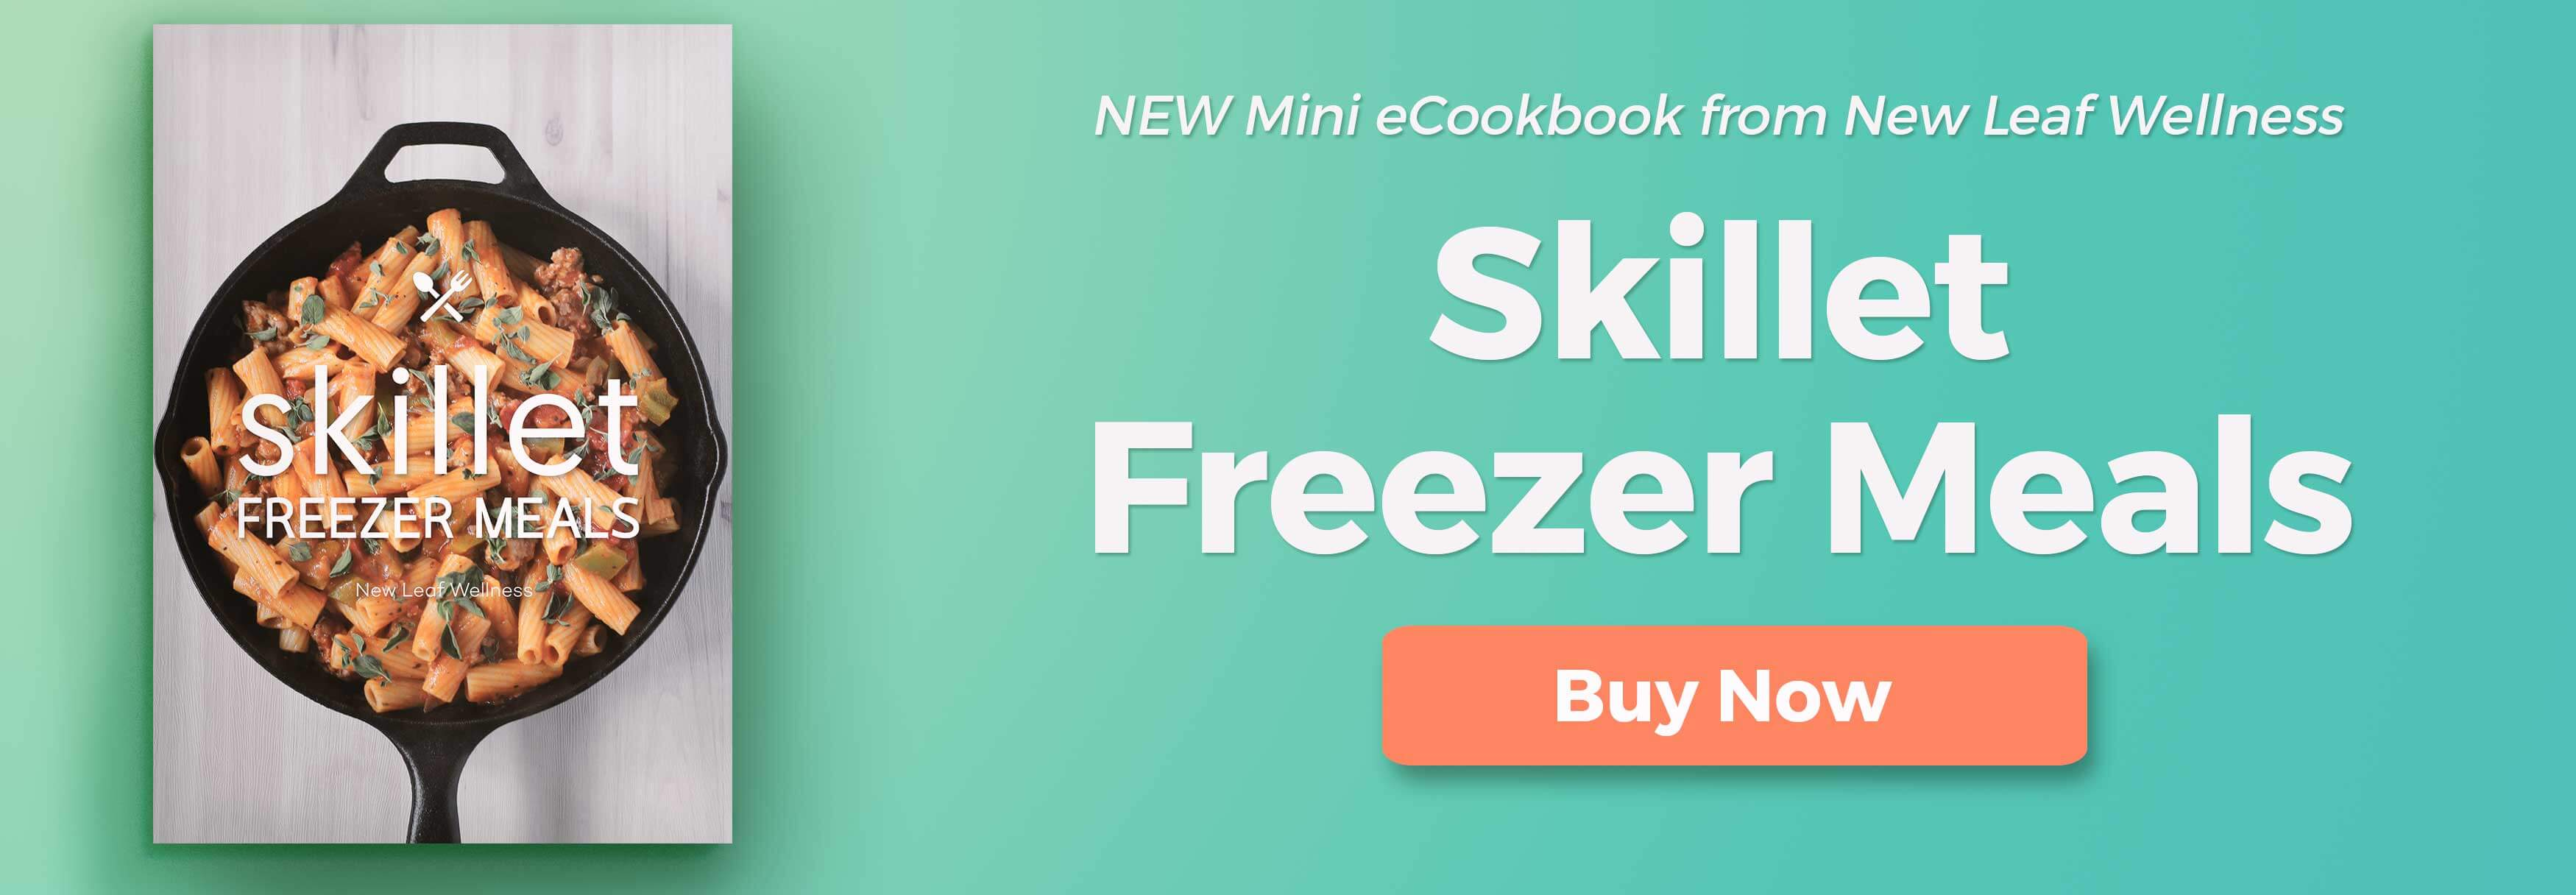 Skillet Freezer Meals eBook